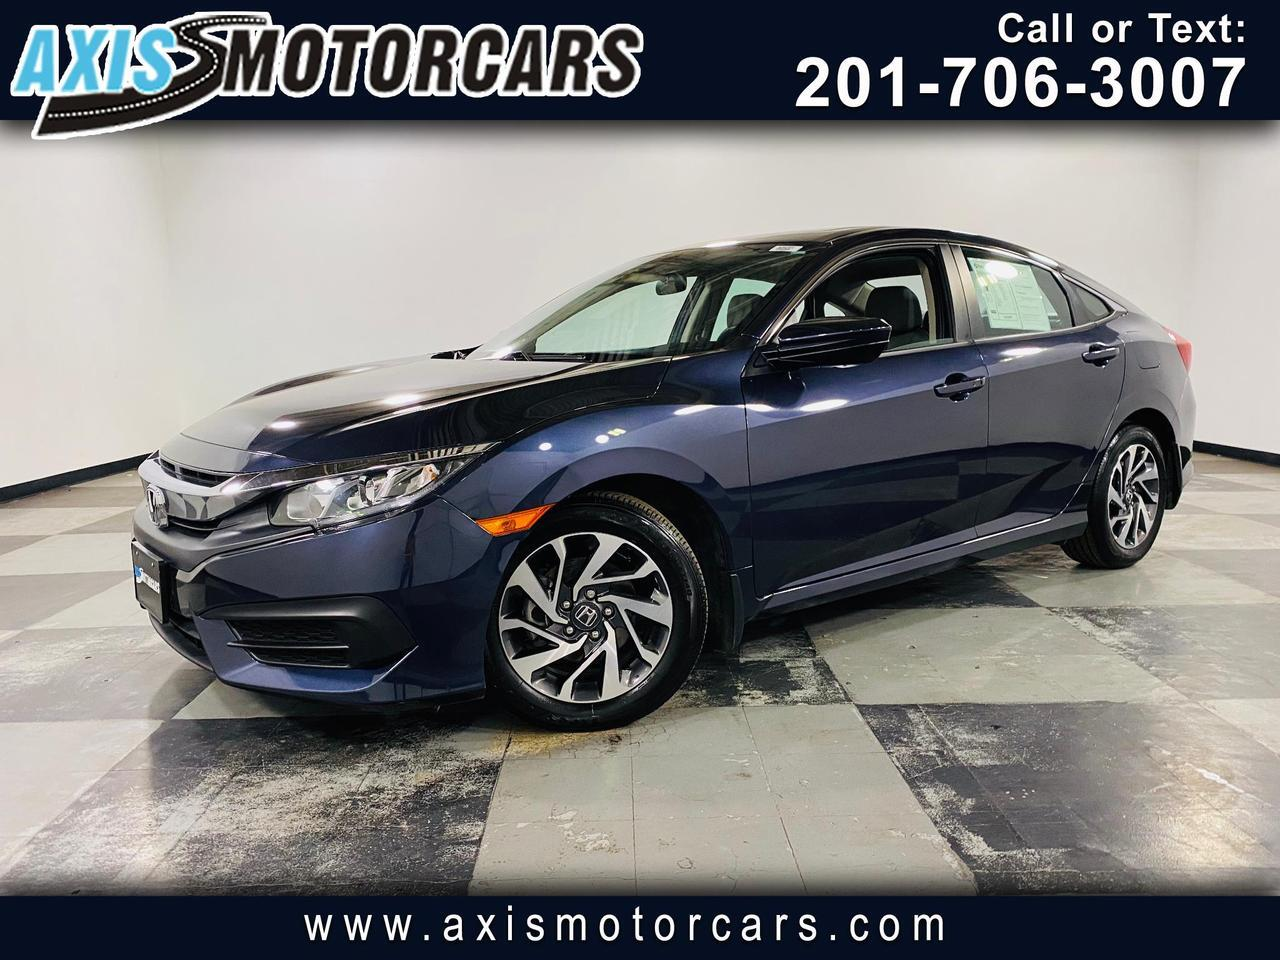 2017 Honda Civic EX CVT Jersey City NJ